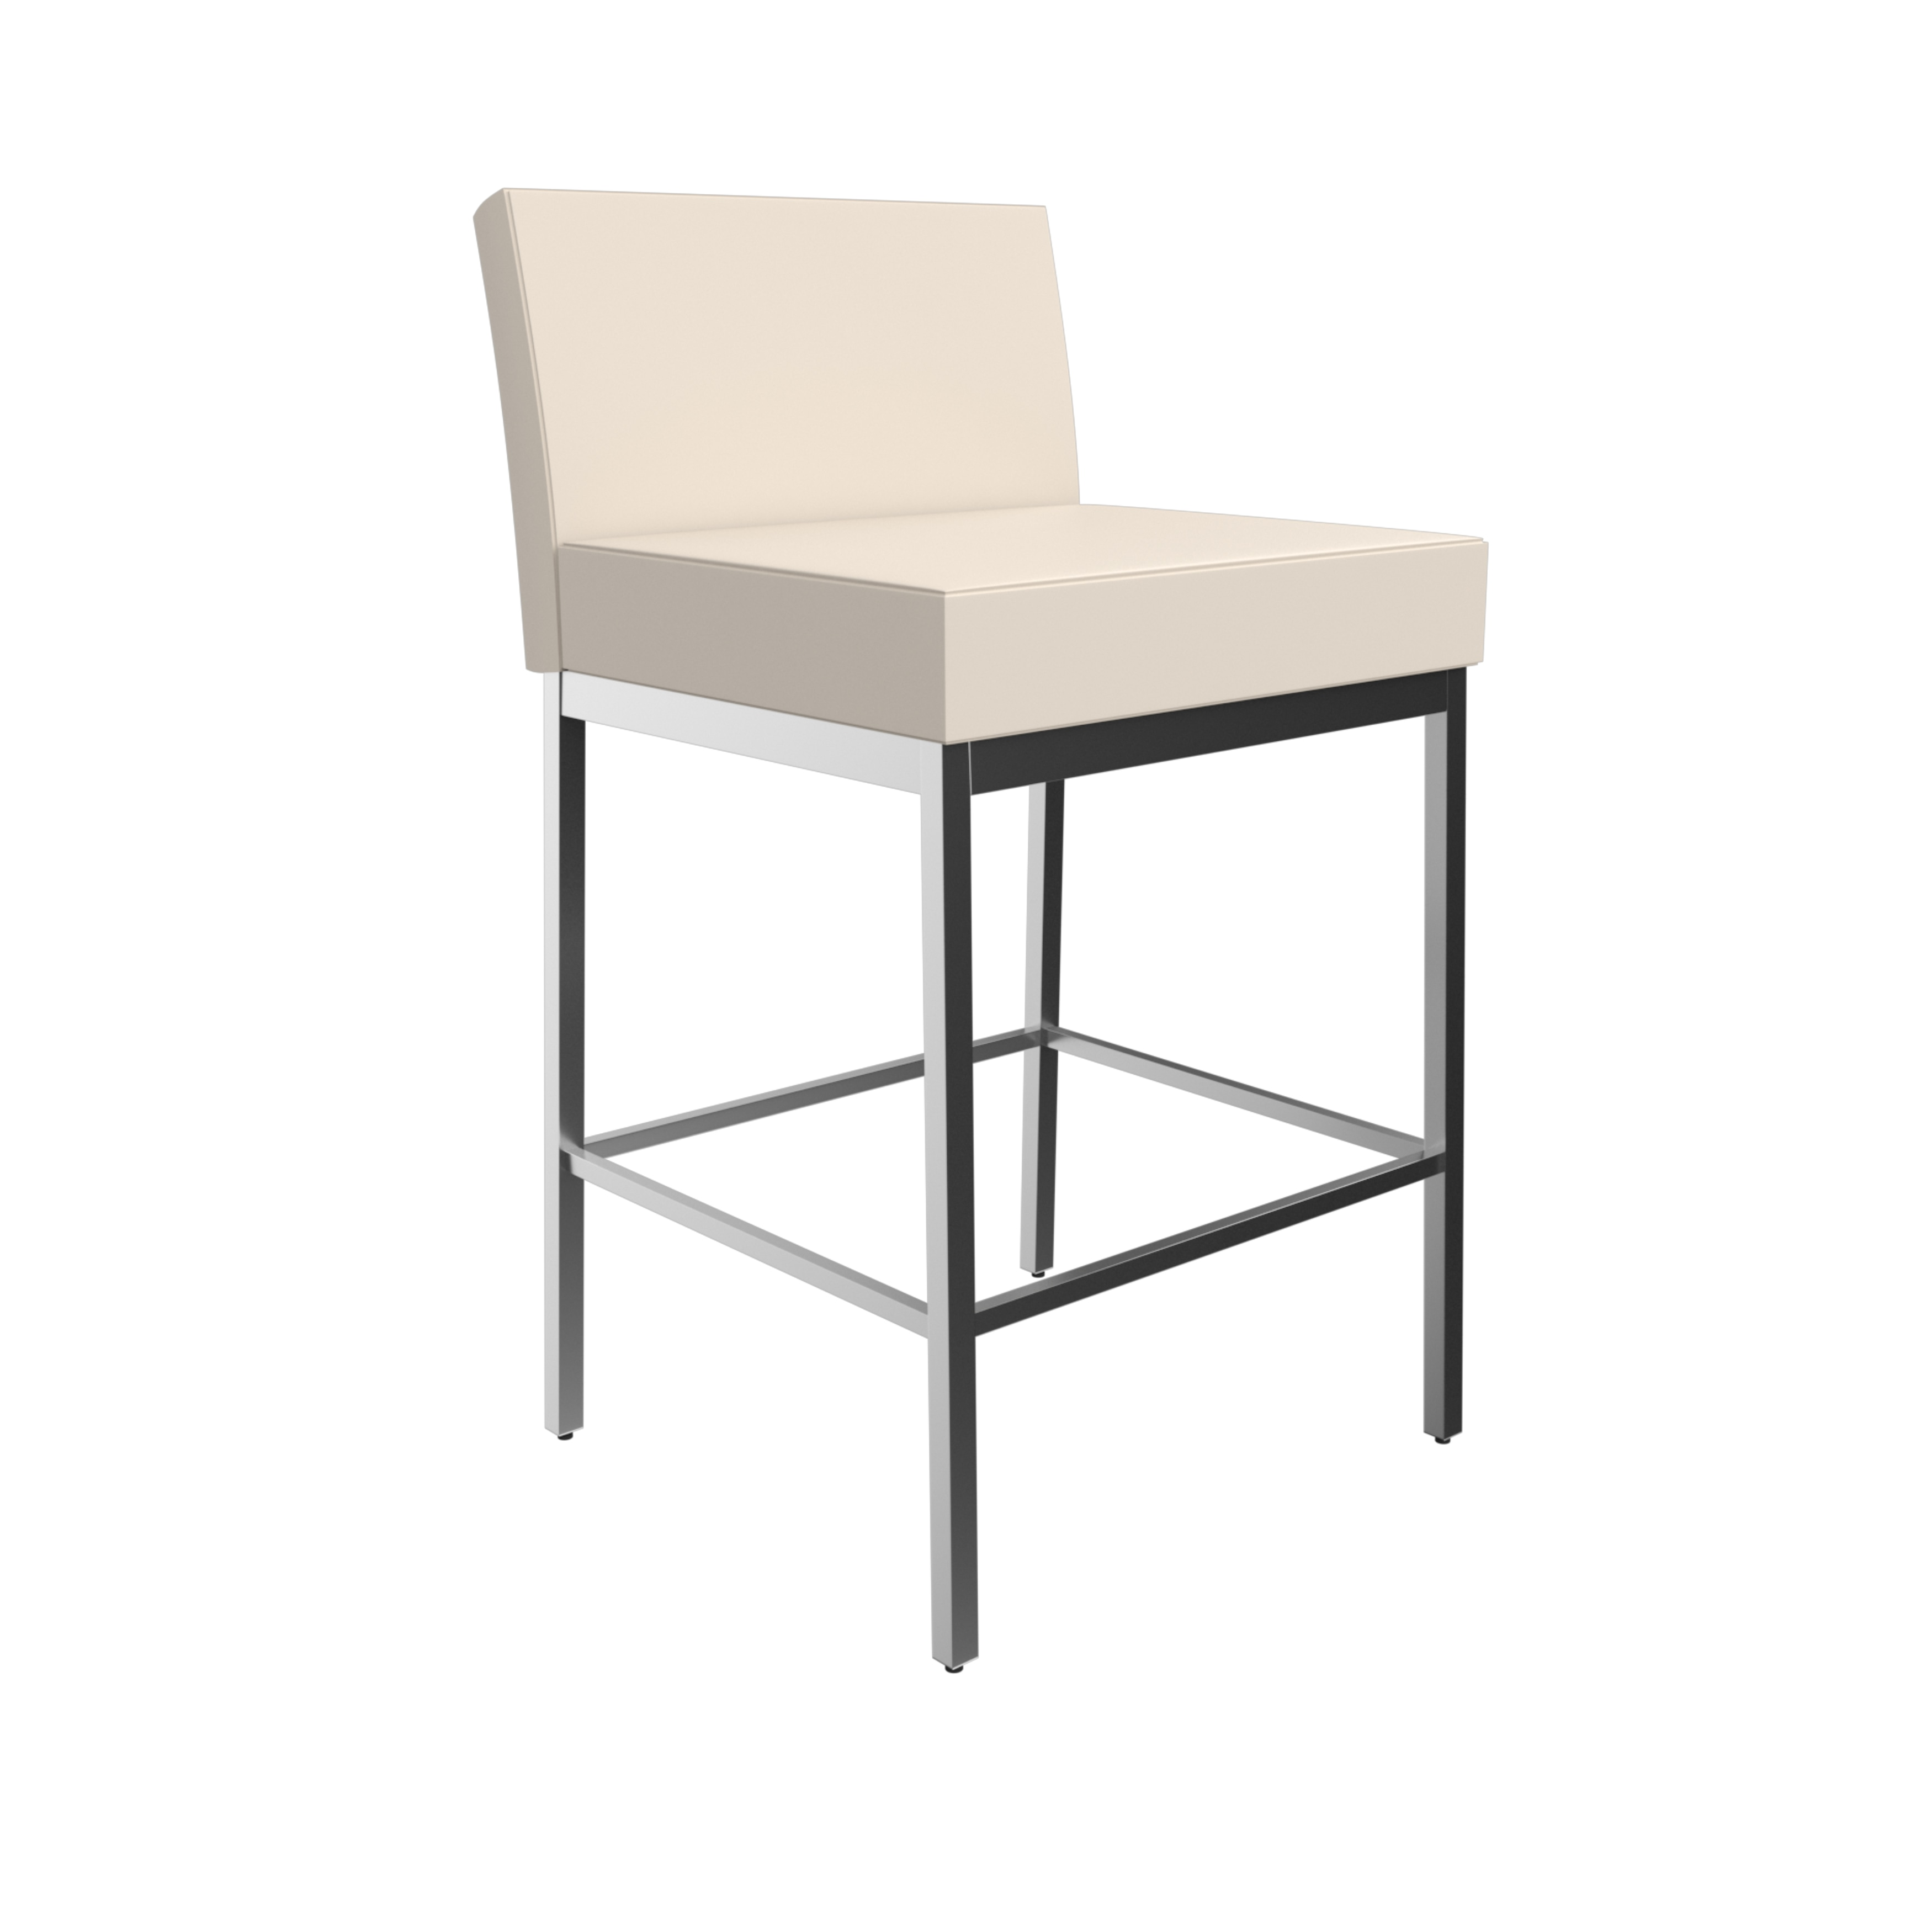 Remarkable Amisco Fairfield Metal Counter Stool Bralicious Painted Fabric Chair Ideas Braliciousco